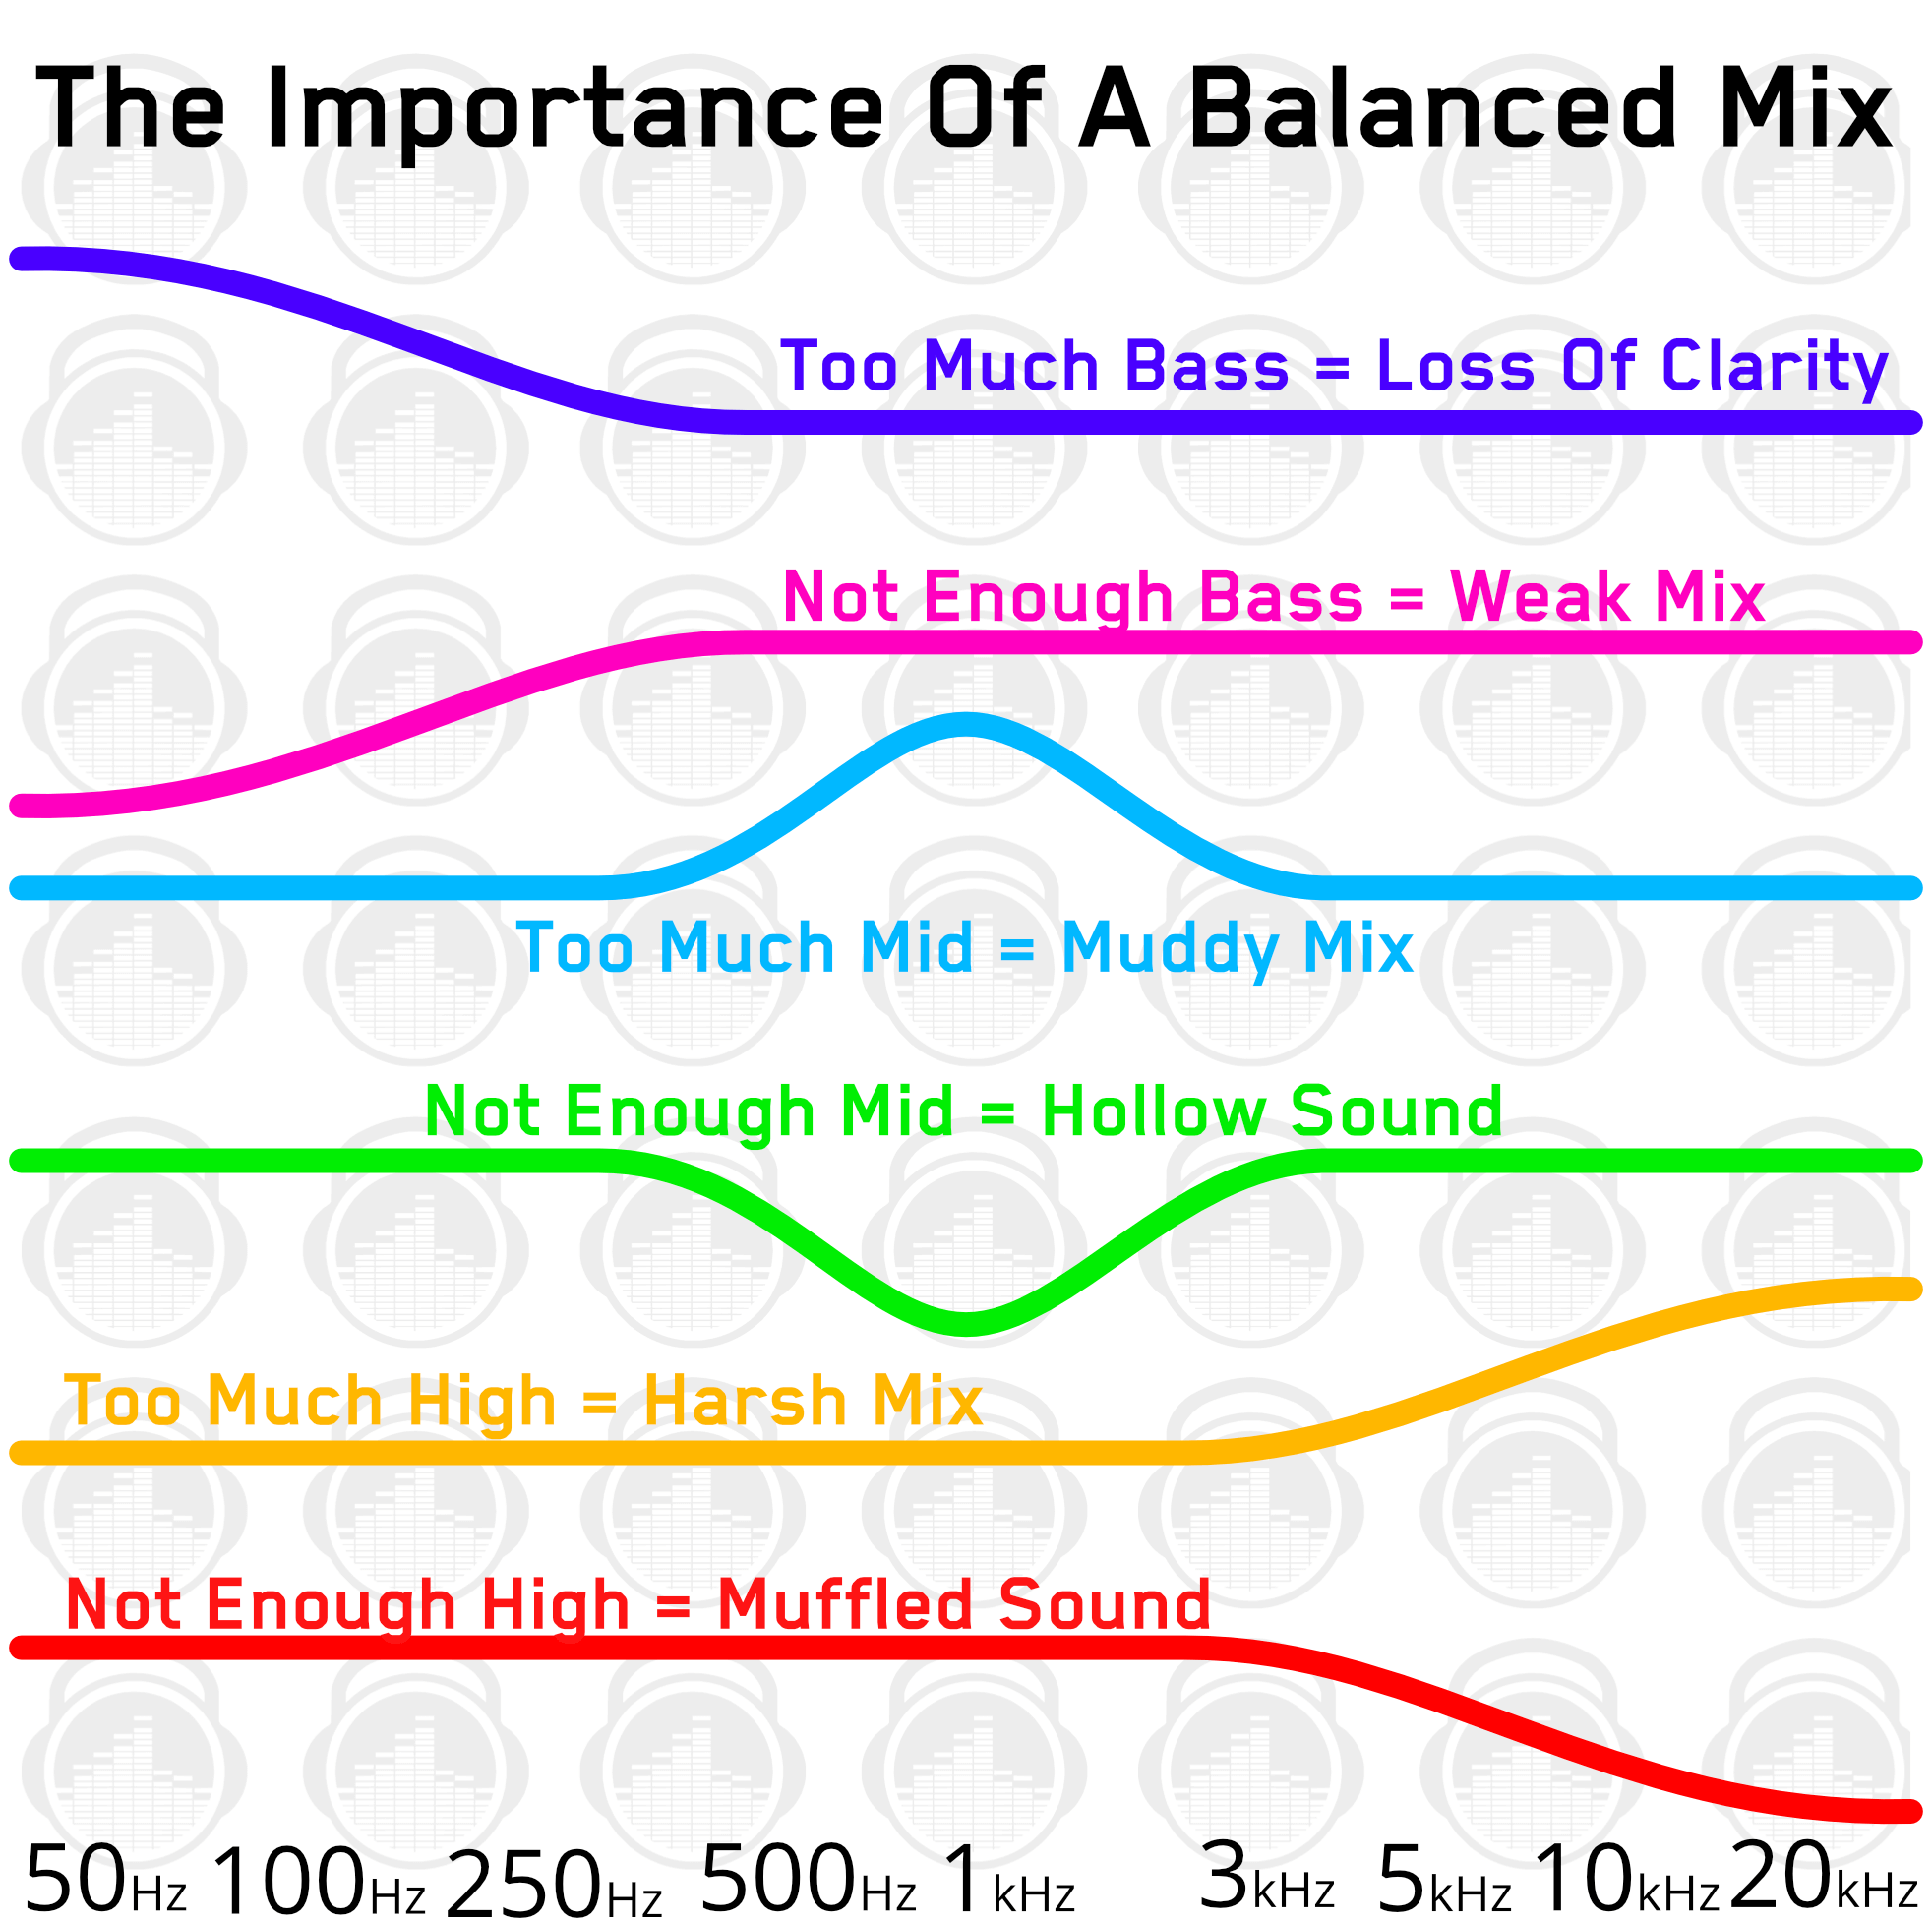 Importance of a balanced mix